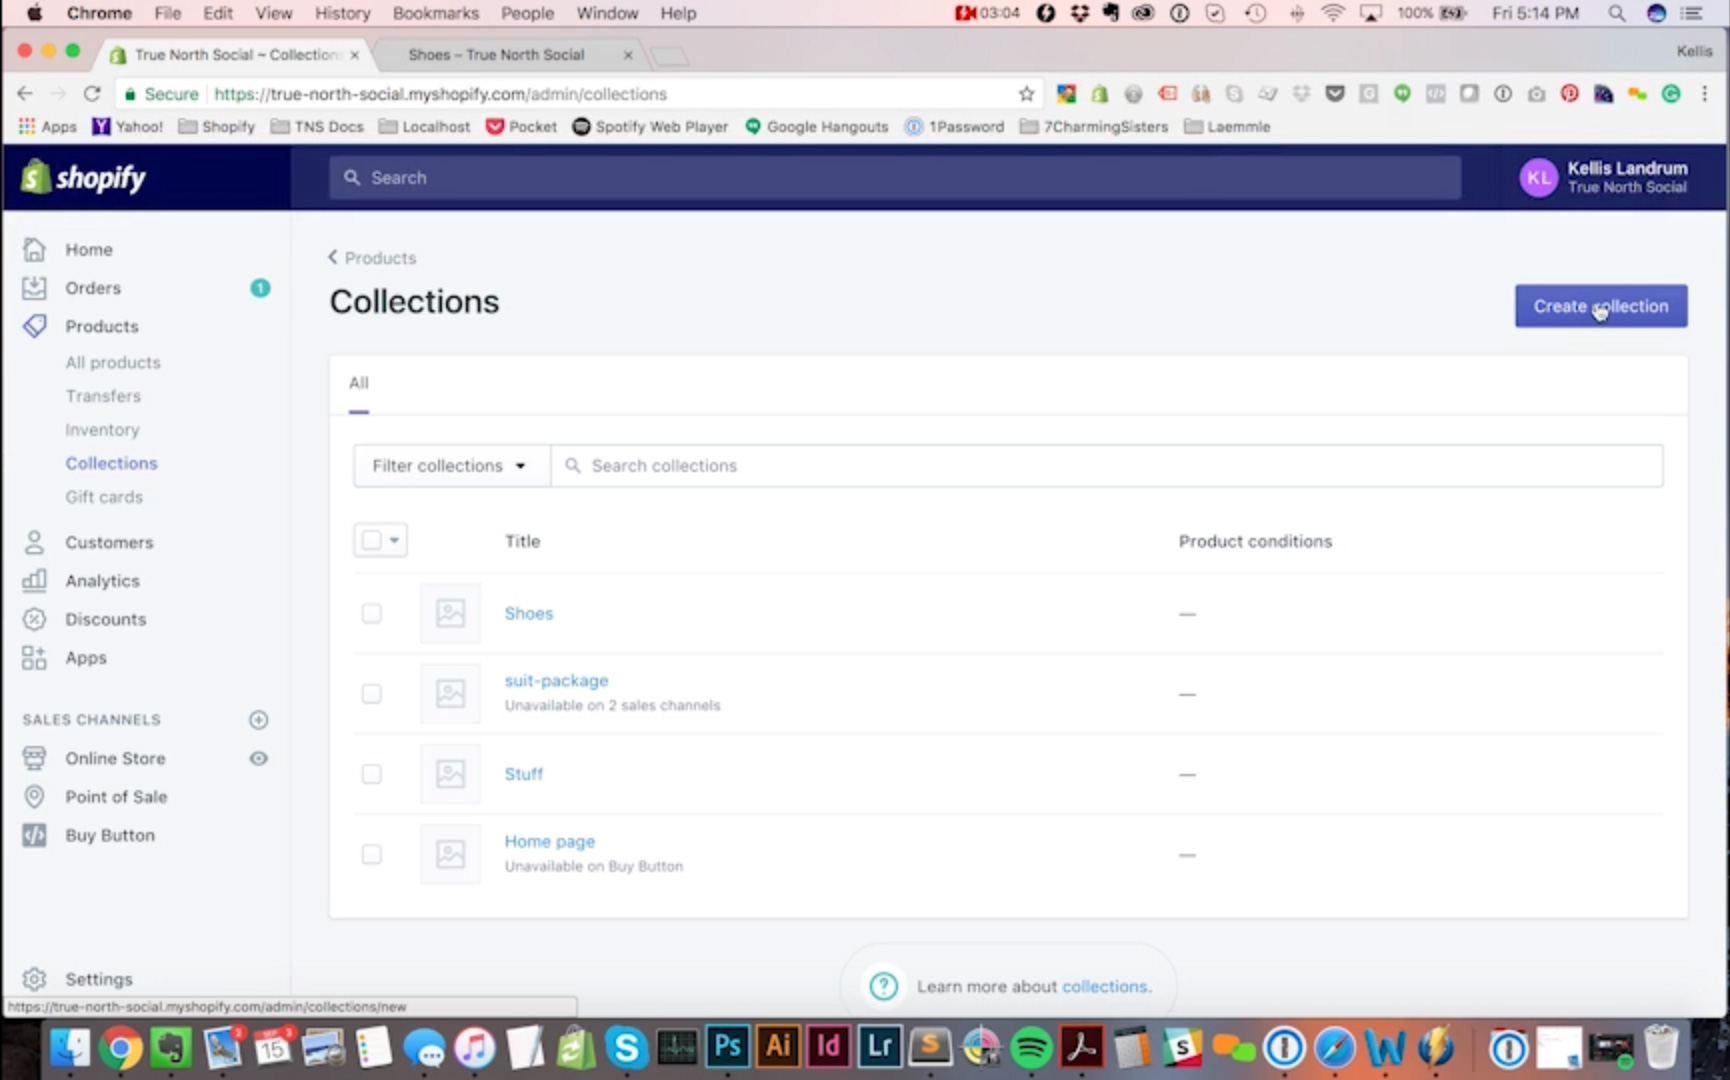 How To Create Collections in Shopify - Video Tutorial - True North